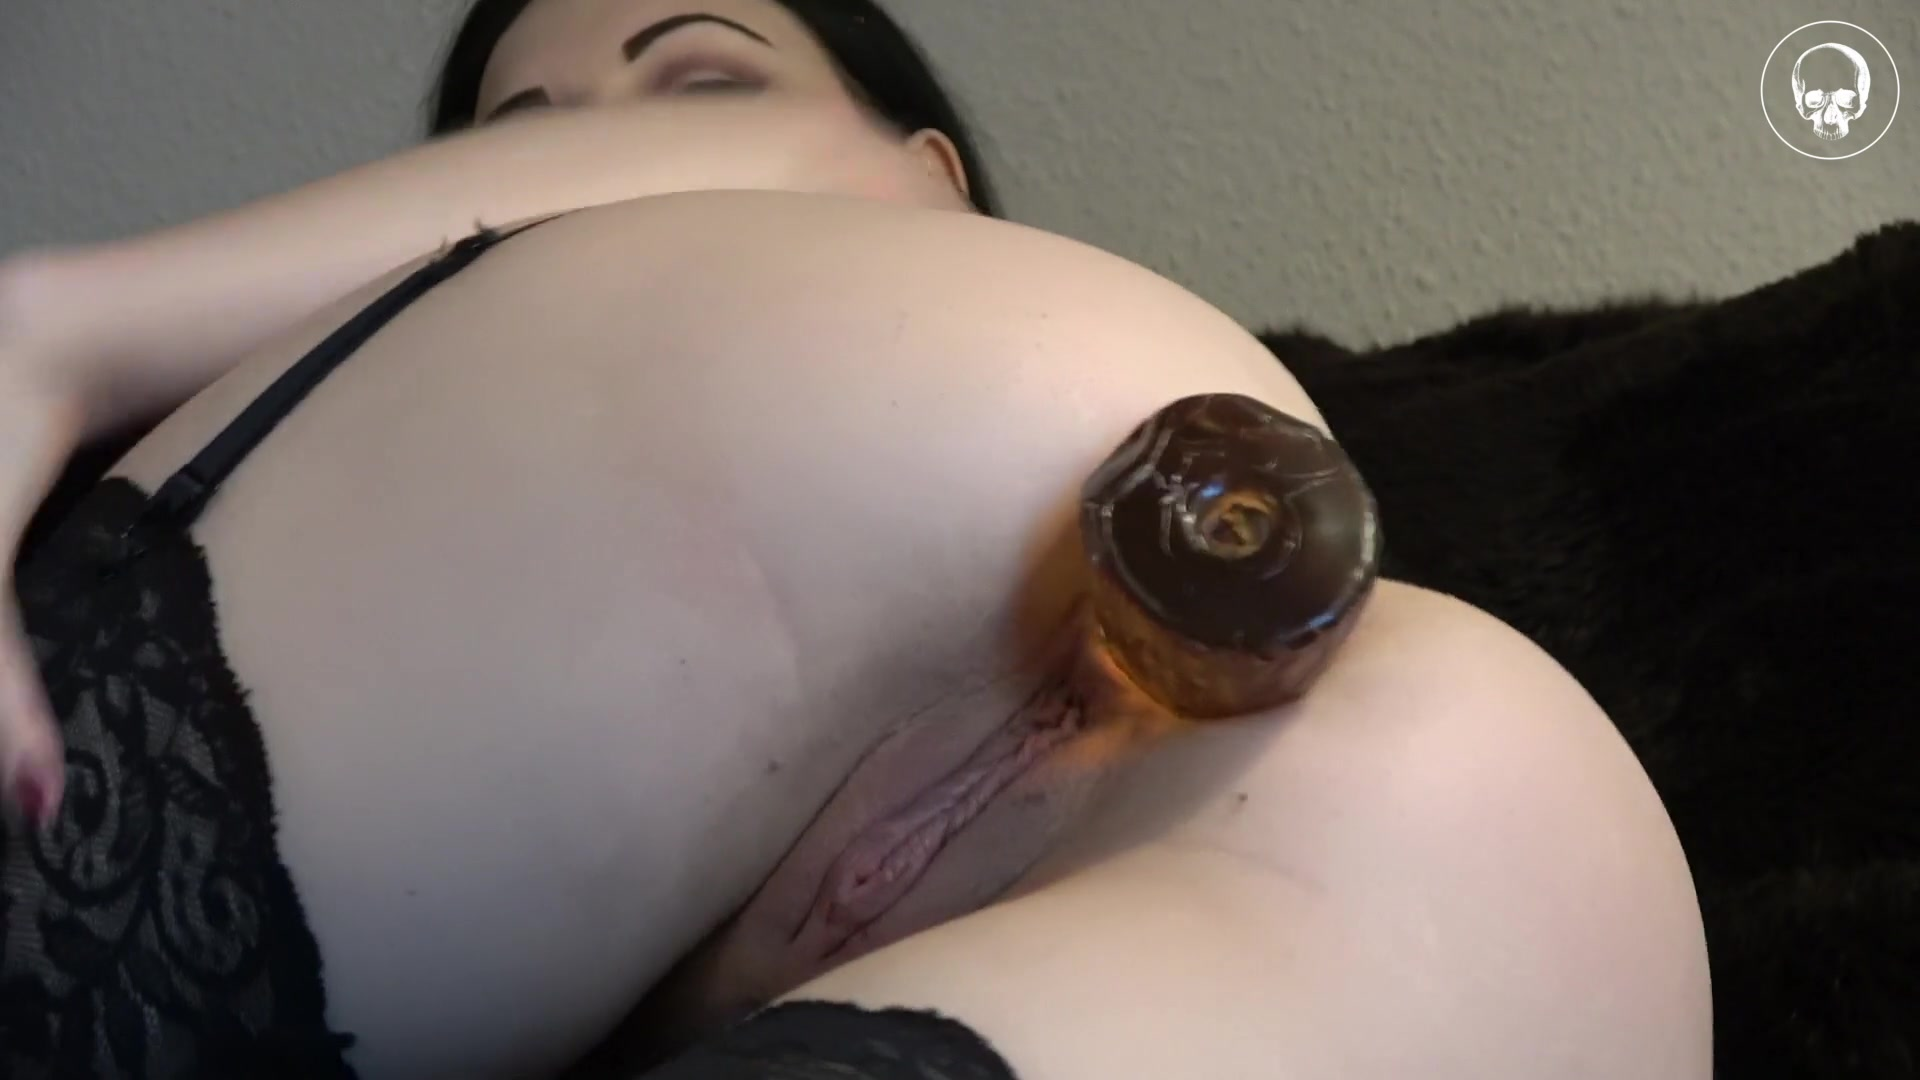 Dildo gets lost in ass something